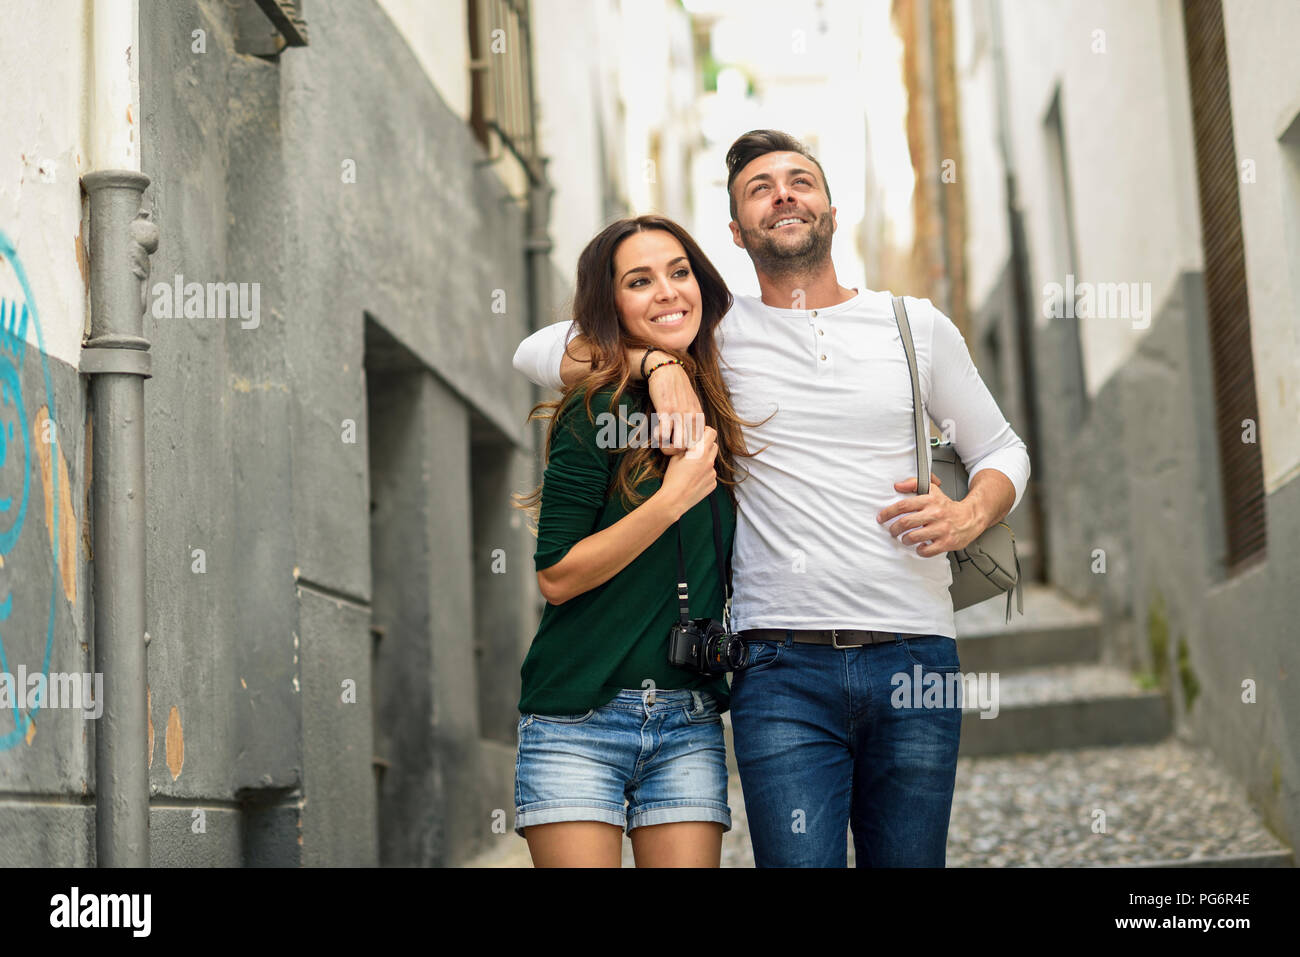 Happy tourist couple walking in the city Stock Photo